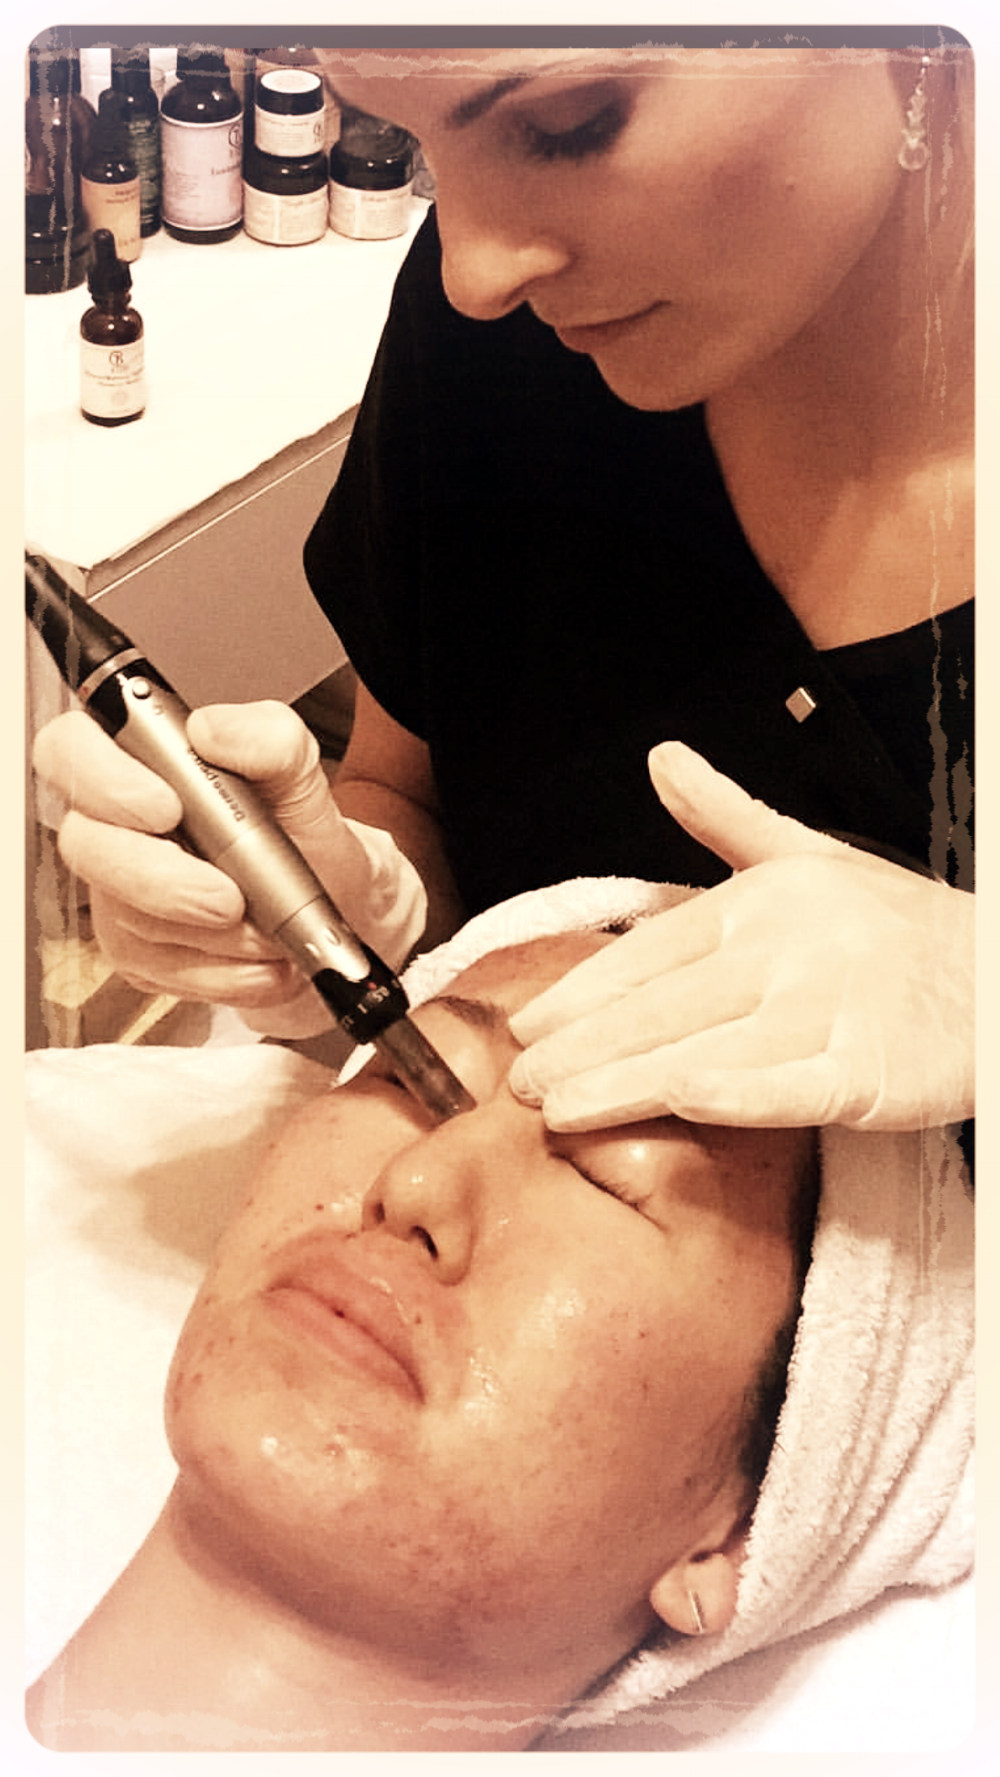 DermaPen (micro-needling) is the most effective and the best skin care treatment for wrinkles, acne scars, scars, skin tightening, hyperpigmentation